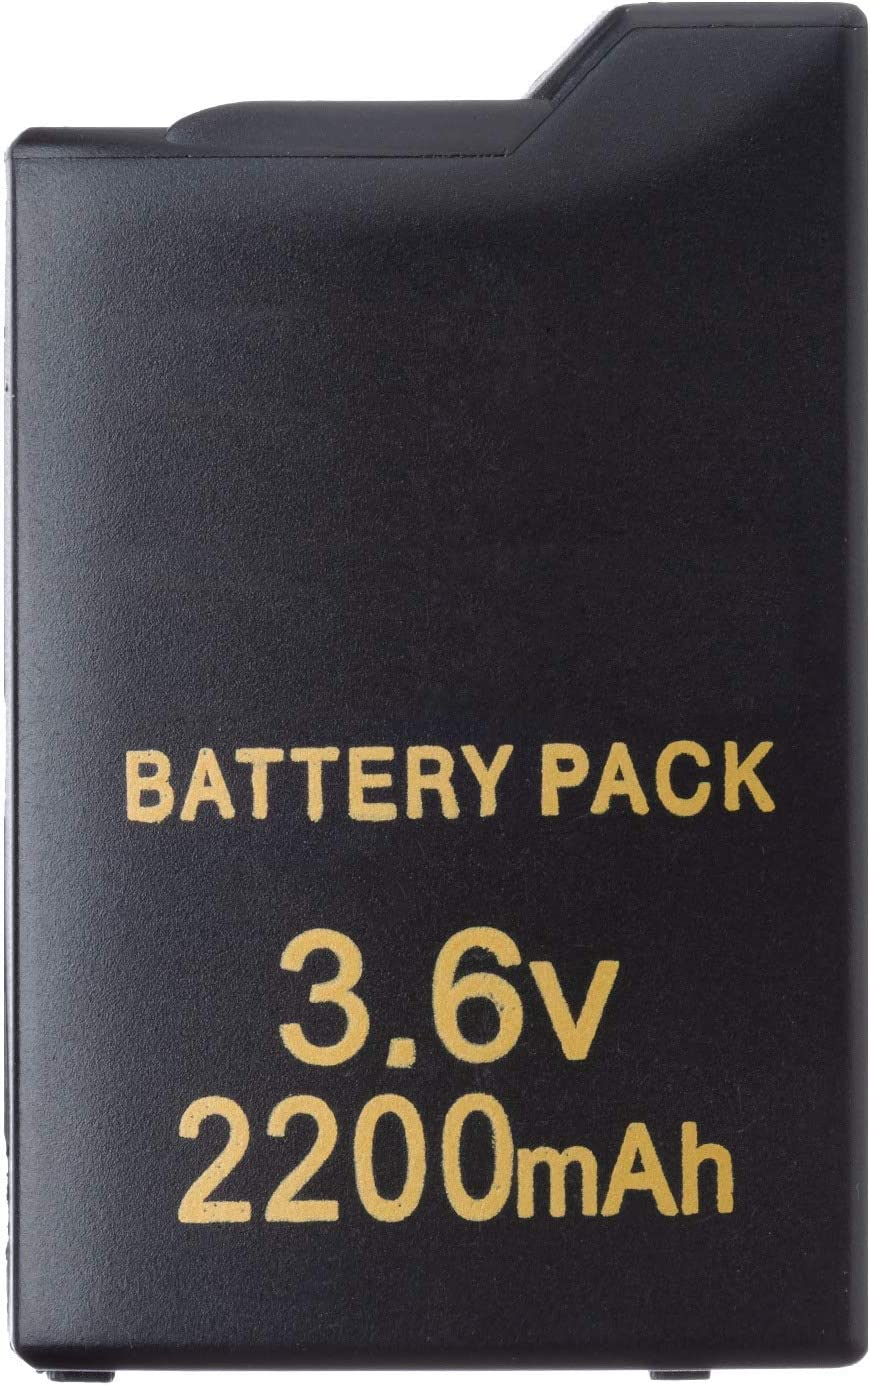 OSTENT 2200mAh 3.6V Rechargeable Battery Pack Replacement Compatible for Sony PSP 1000 Console [Importación Inglesa]